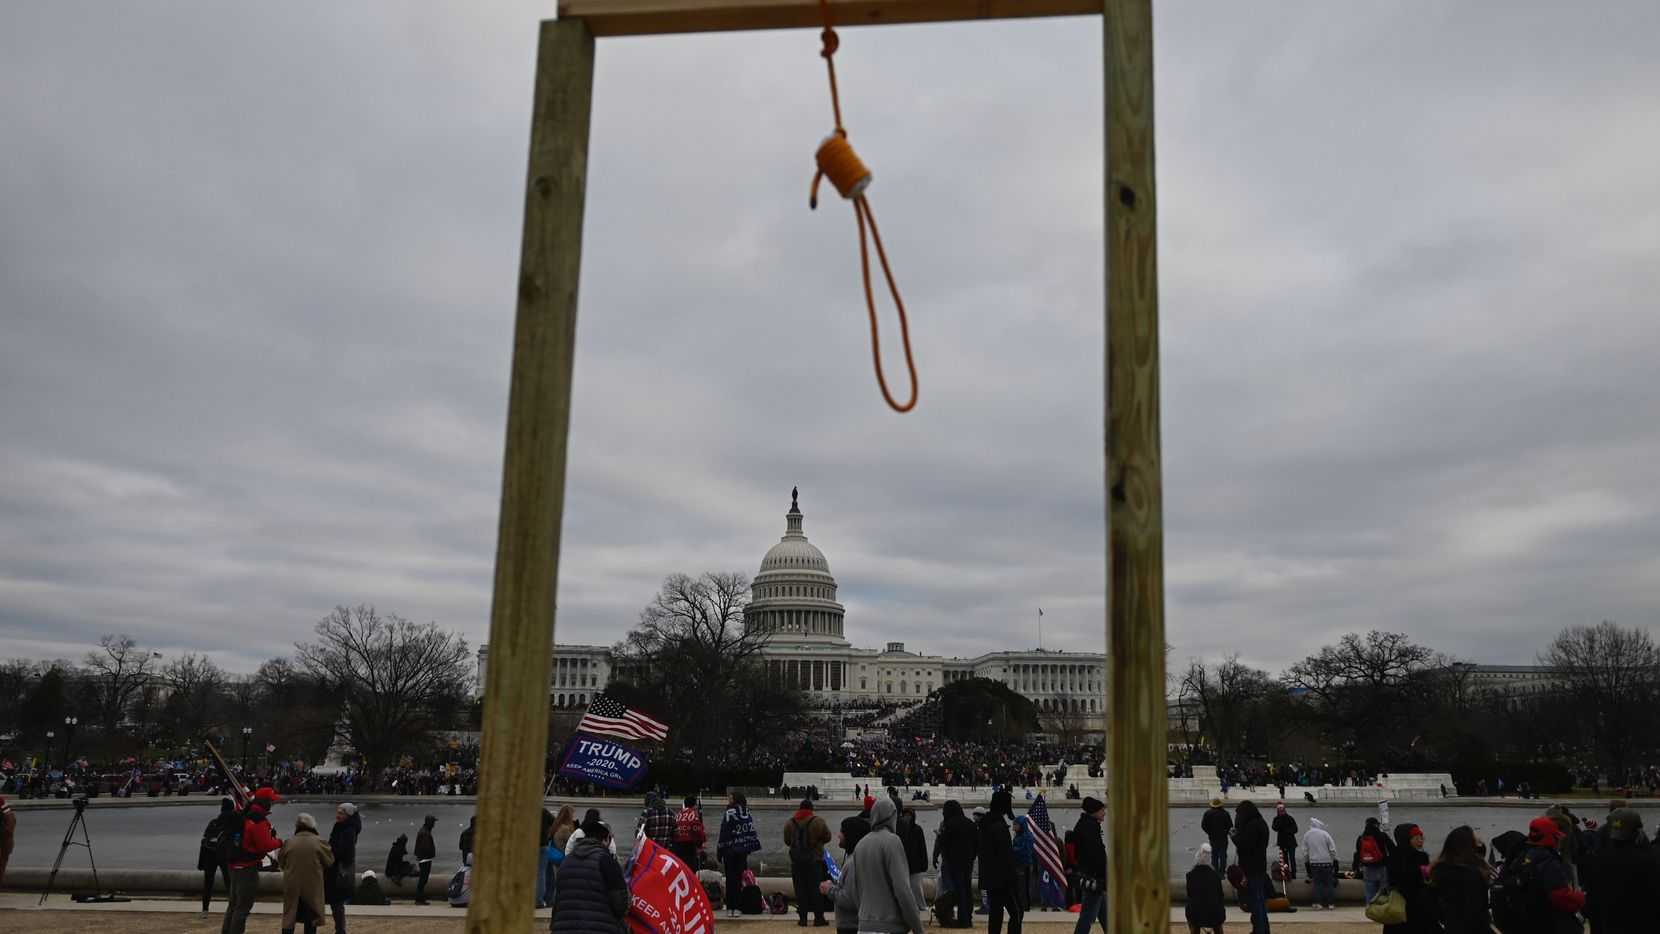 Supporters of President Donald Trump gather on the West side of the U.S. Capitol in Washington, D.C., on Jan. 6. Rioters breeched security and entered the Capitol as Congress was certifying the 2020 Electoral College votes. At least five people died as a result.